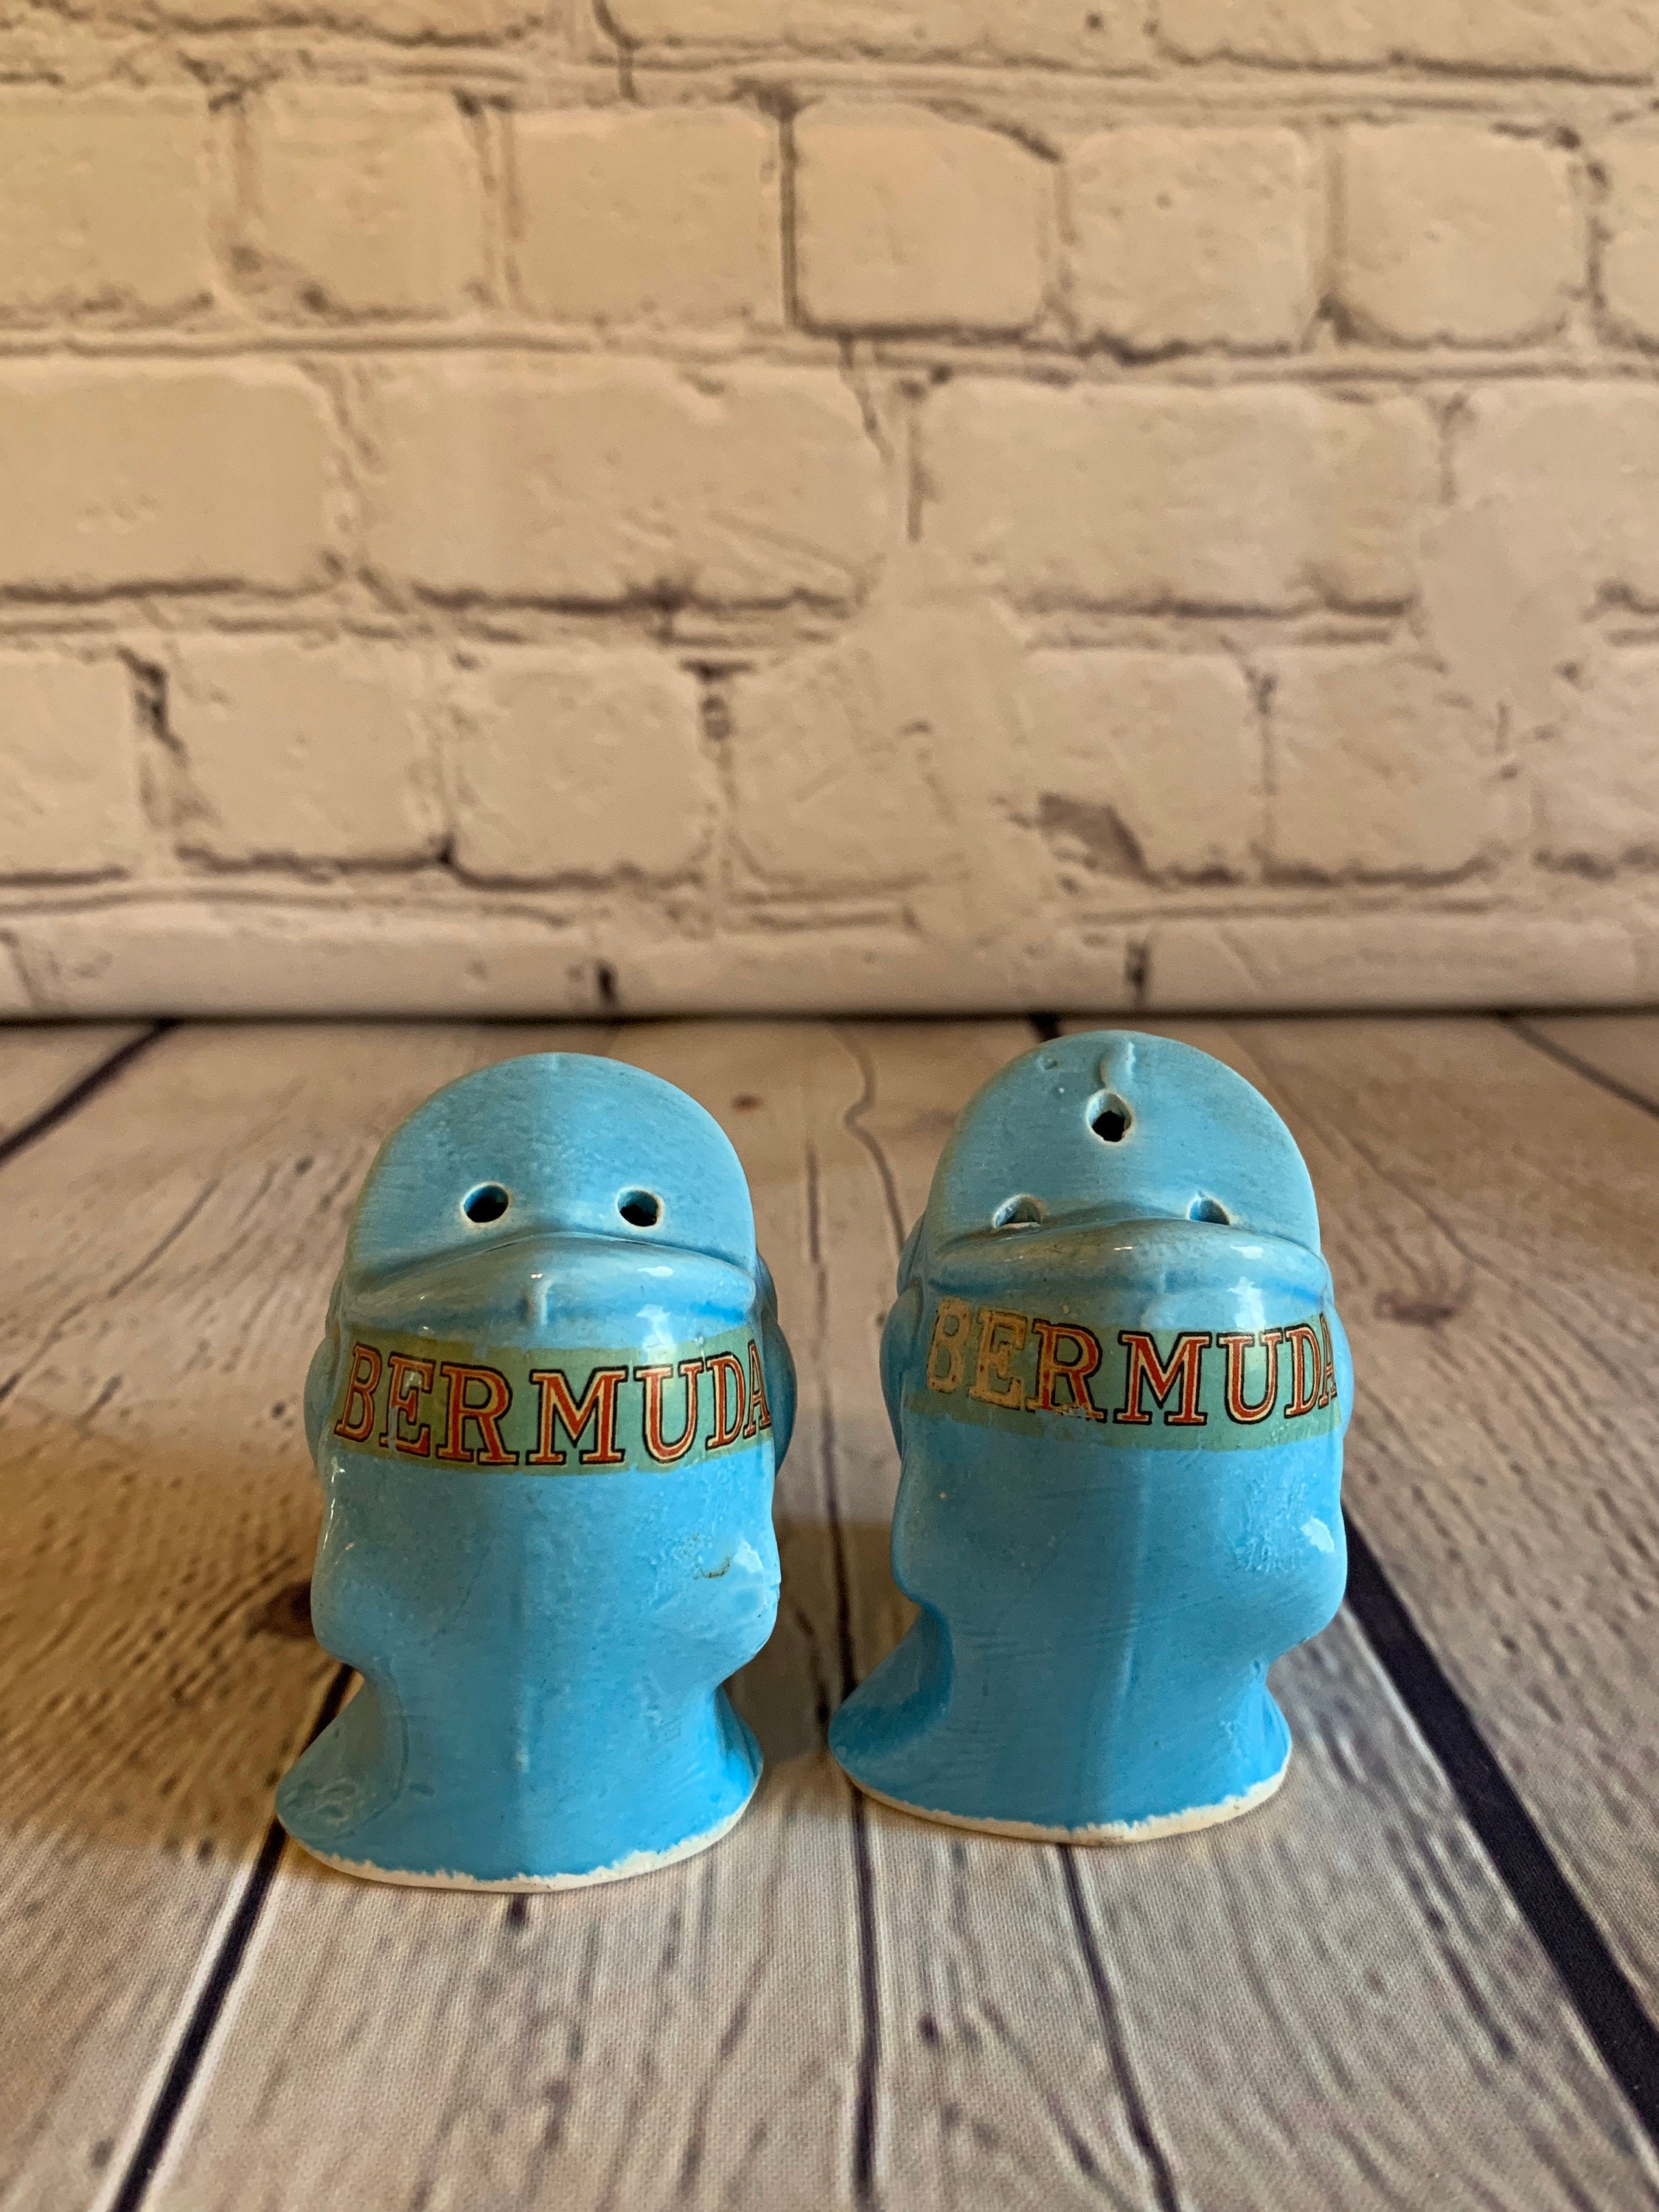 Vintage Ceramic Bermuda Fish Salt & Pepper Shakers - 1960's